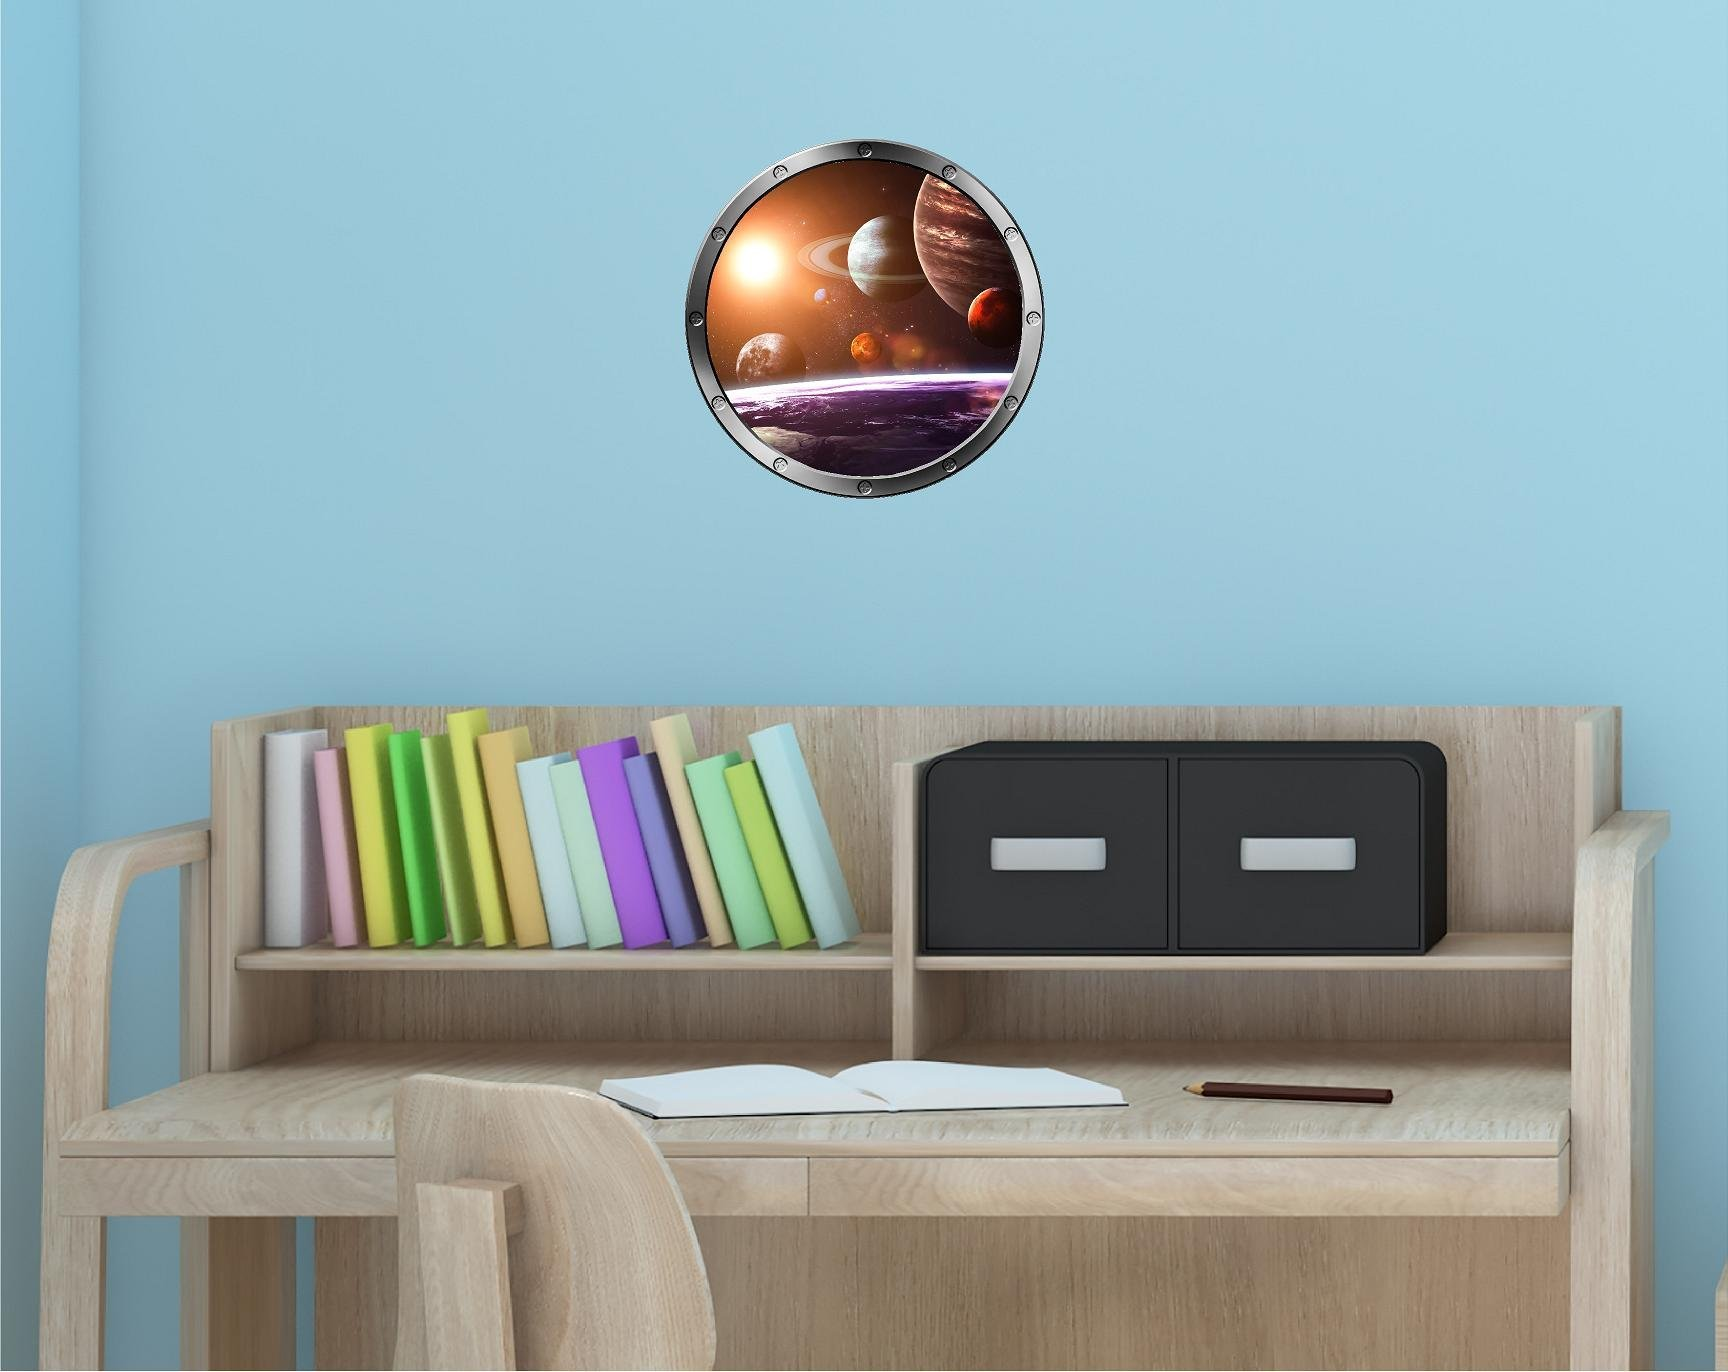 12'' Porthole Outer Space Window SOLAR SYSTEM #1 Round Silver Instant View Wall Graphic Kids Sticker Room Decal Art Décor SMALL